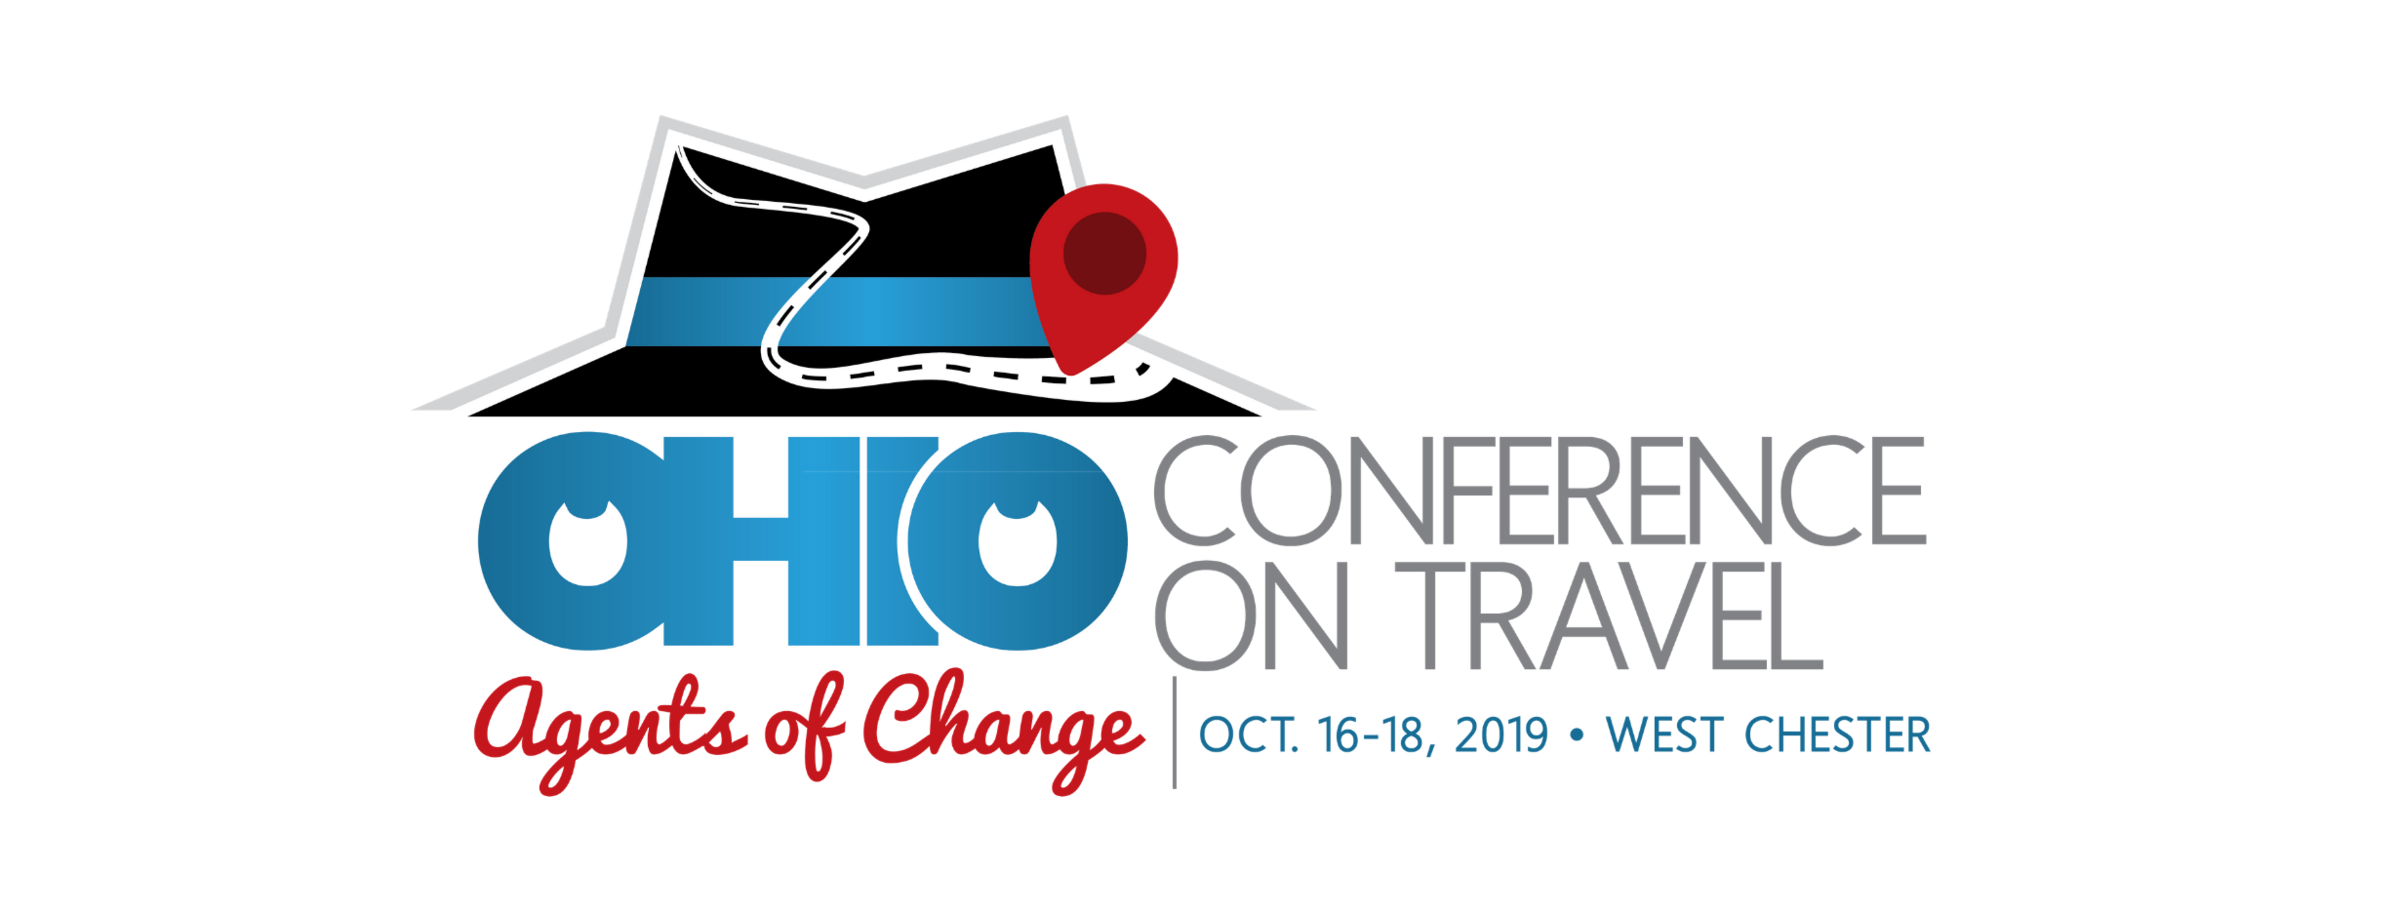 Register or Apply for Heartland Travel Showcase 2019